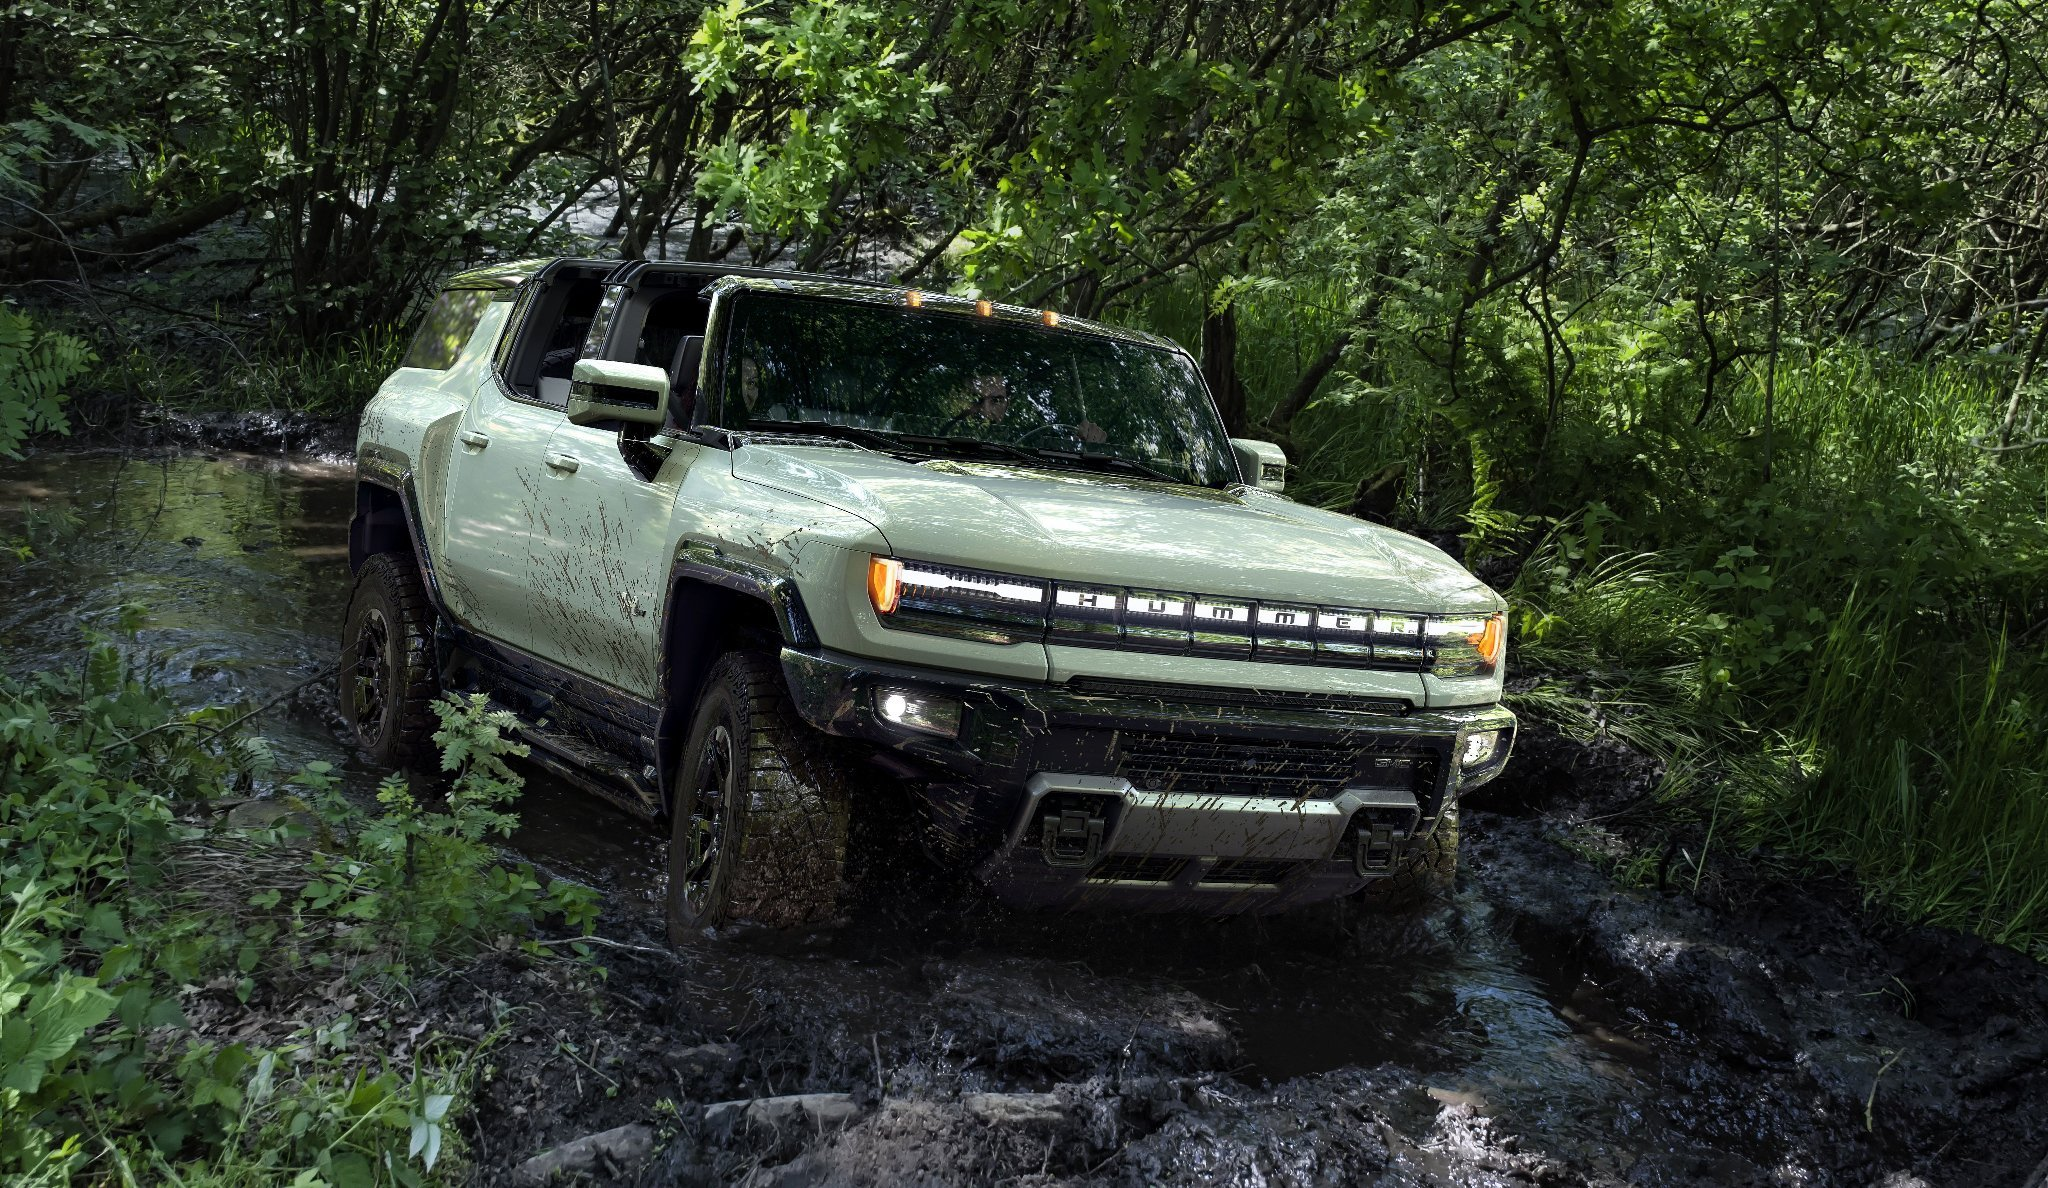 Revealed: Hummer SUV features, starting price, and interior